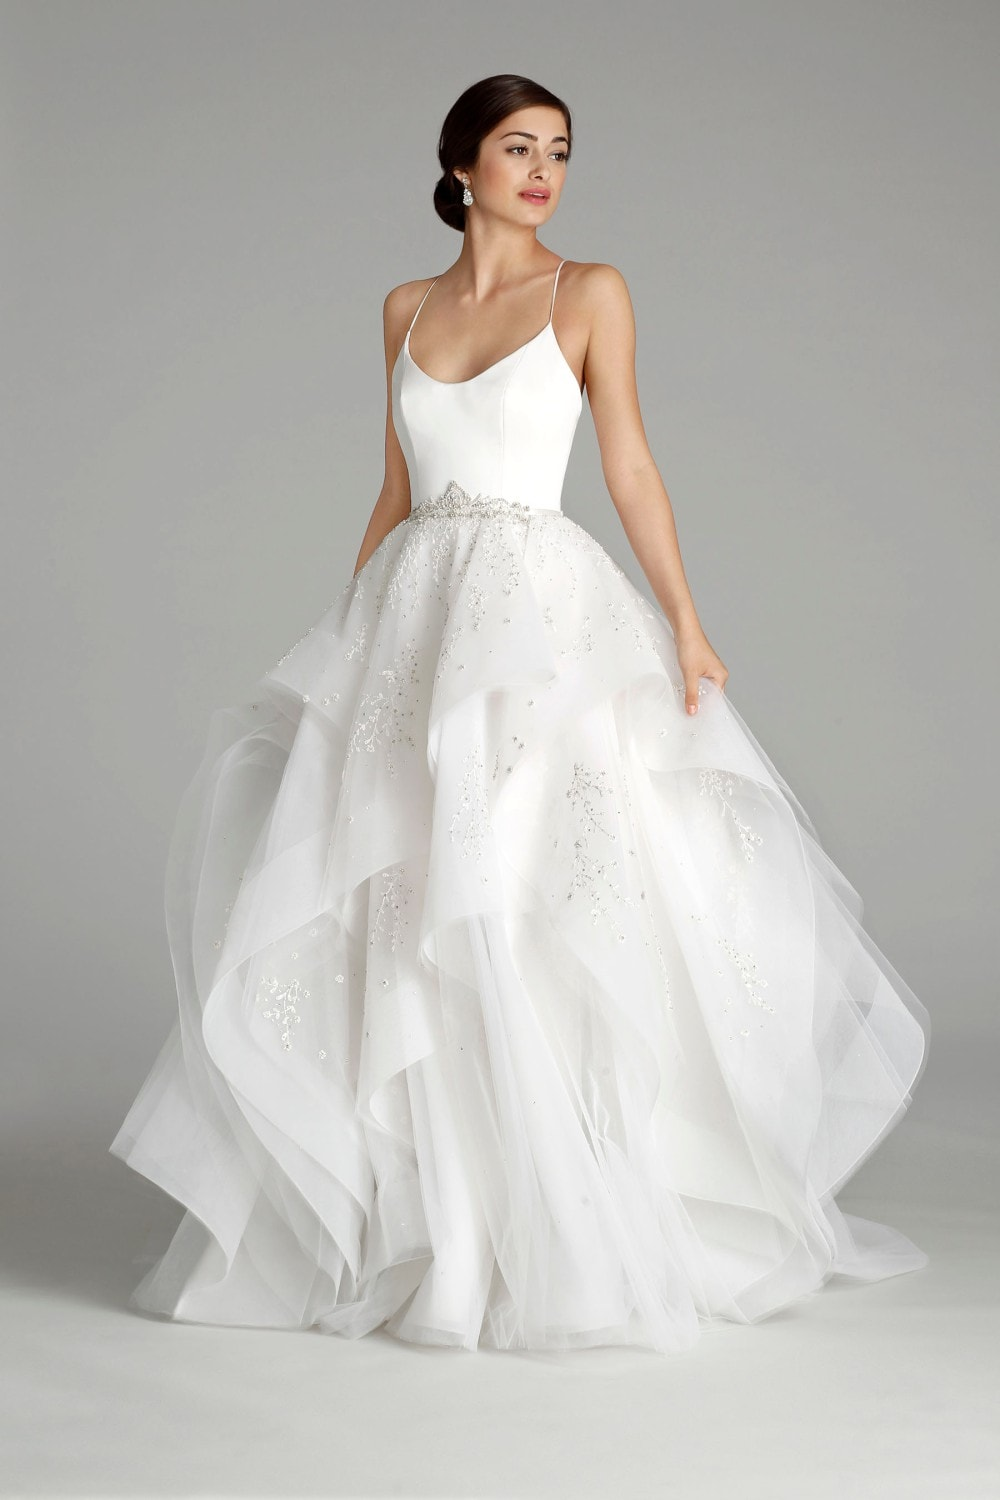 Casual Wedding Dresses Dallas : Alvina valenta wedding dresses fall collection